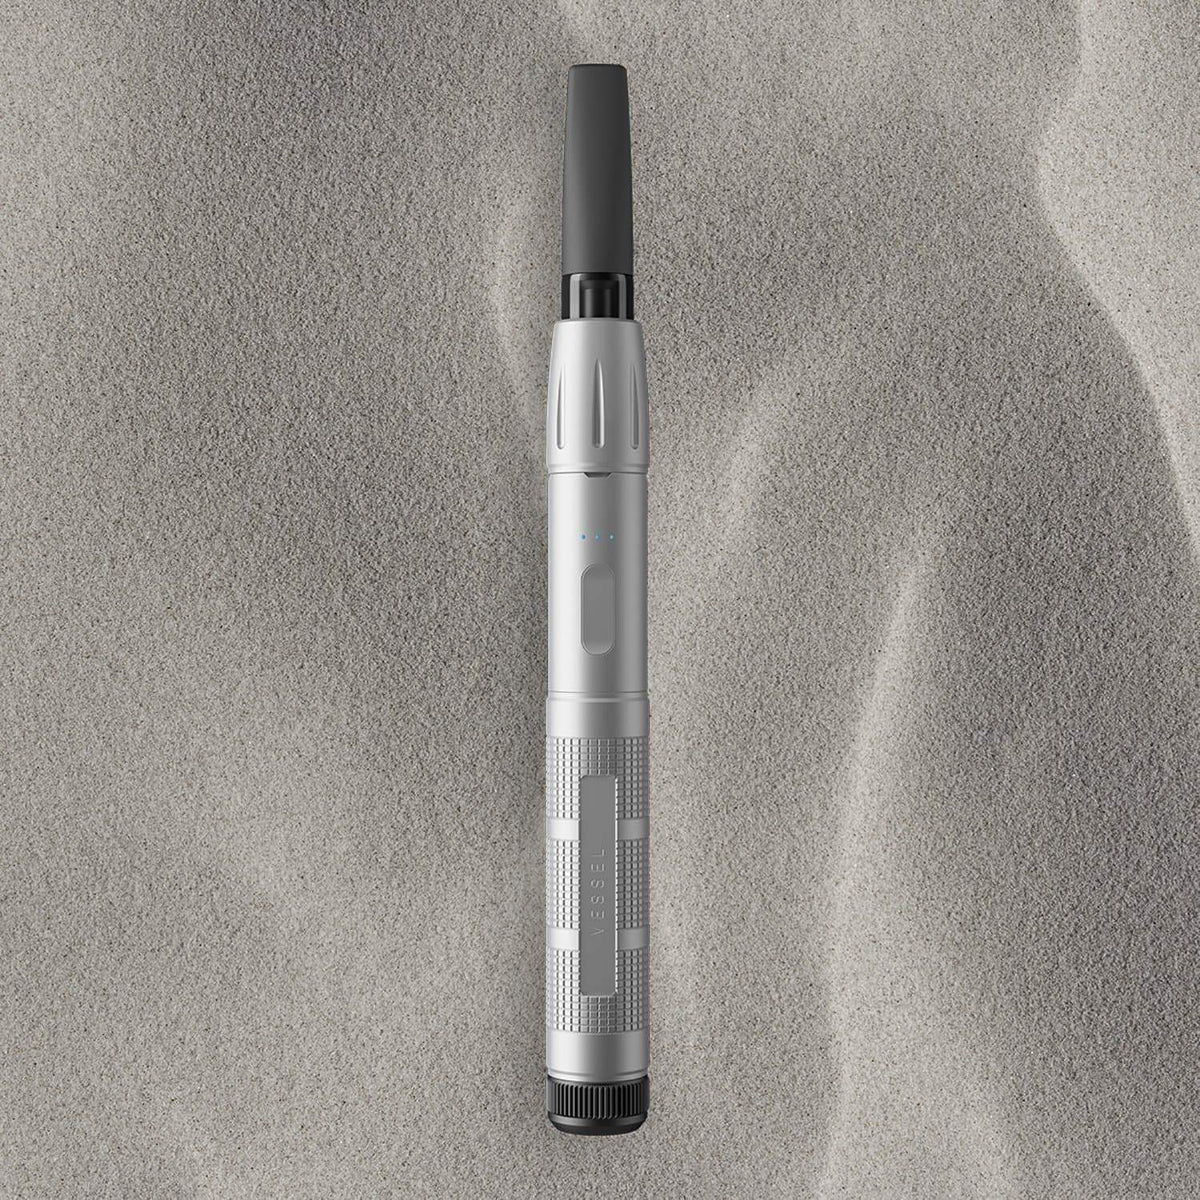 Vessel Expedition Vape Pen Battery in Silver (Alternate Background)